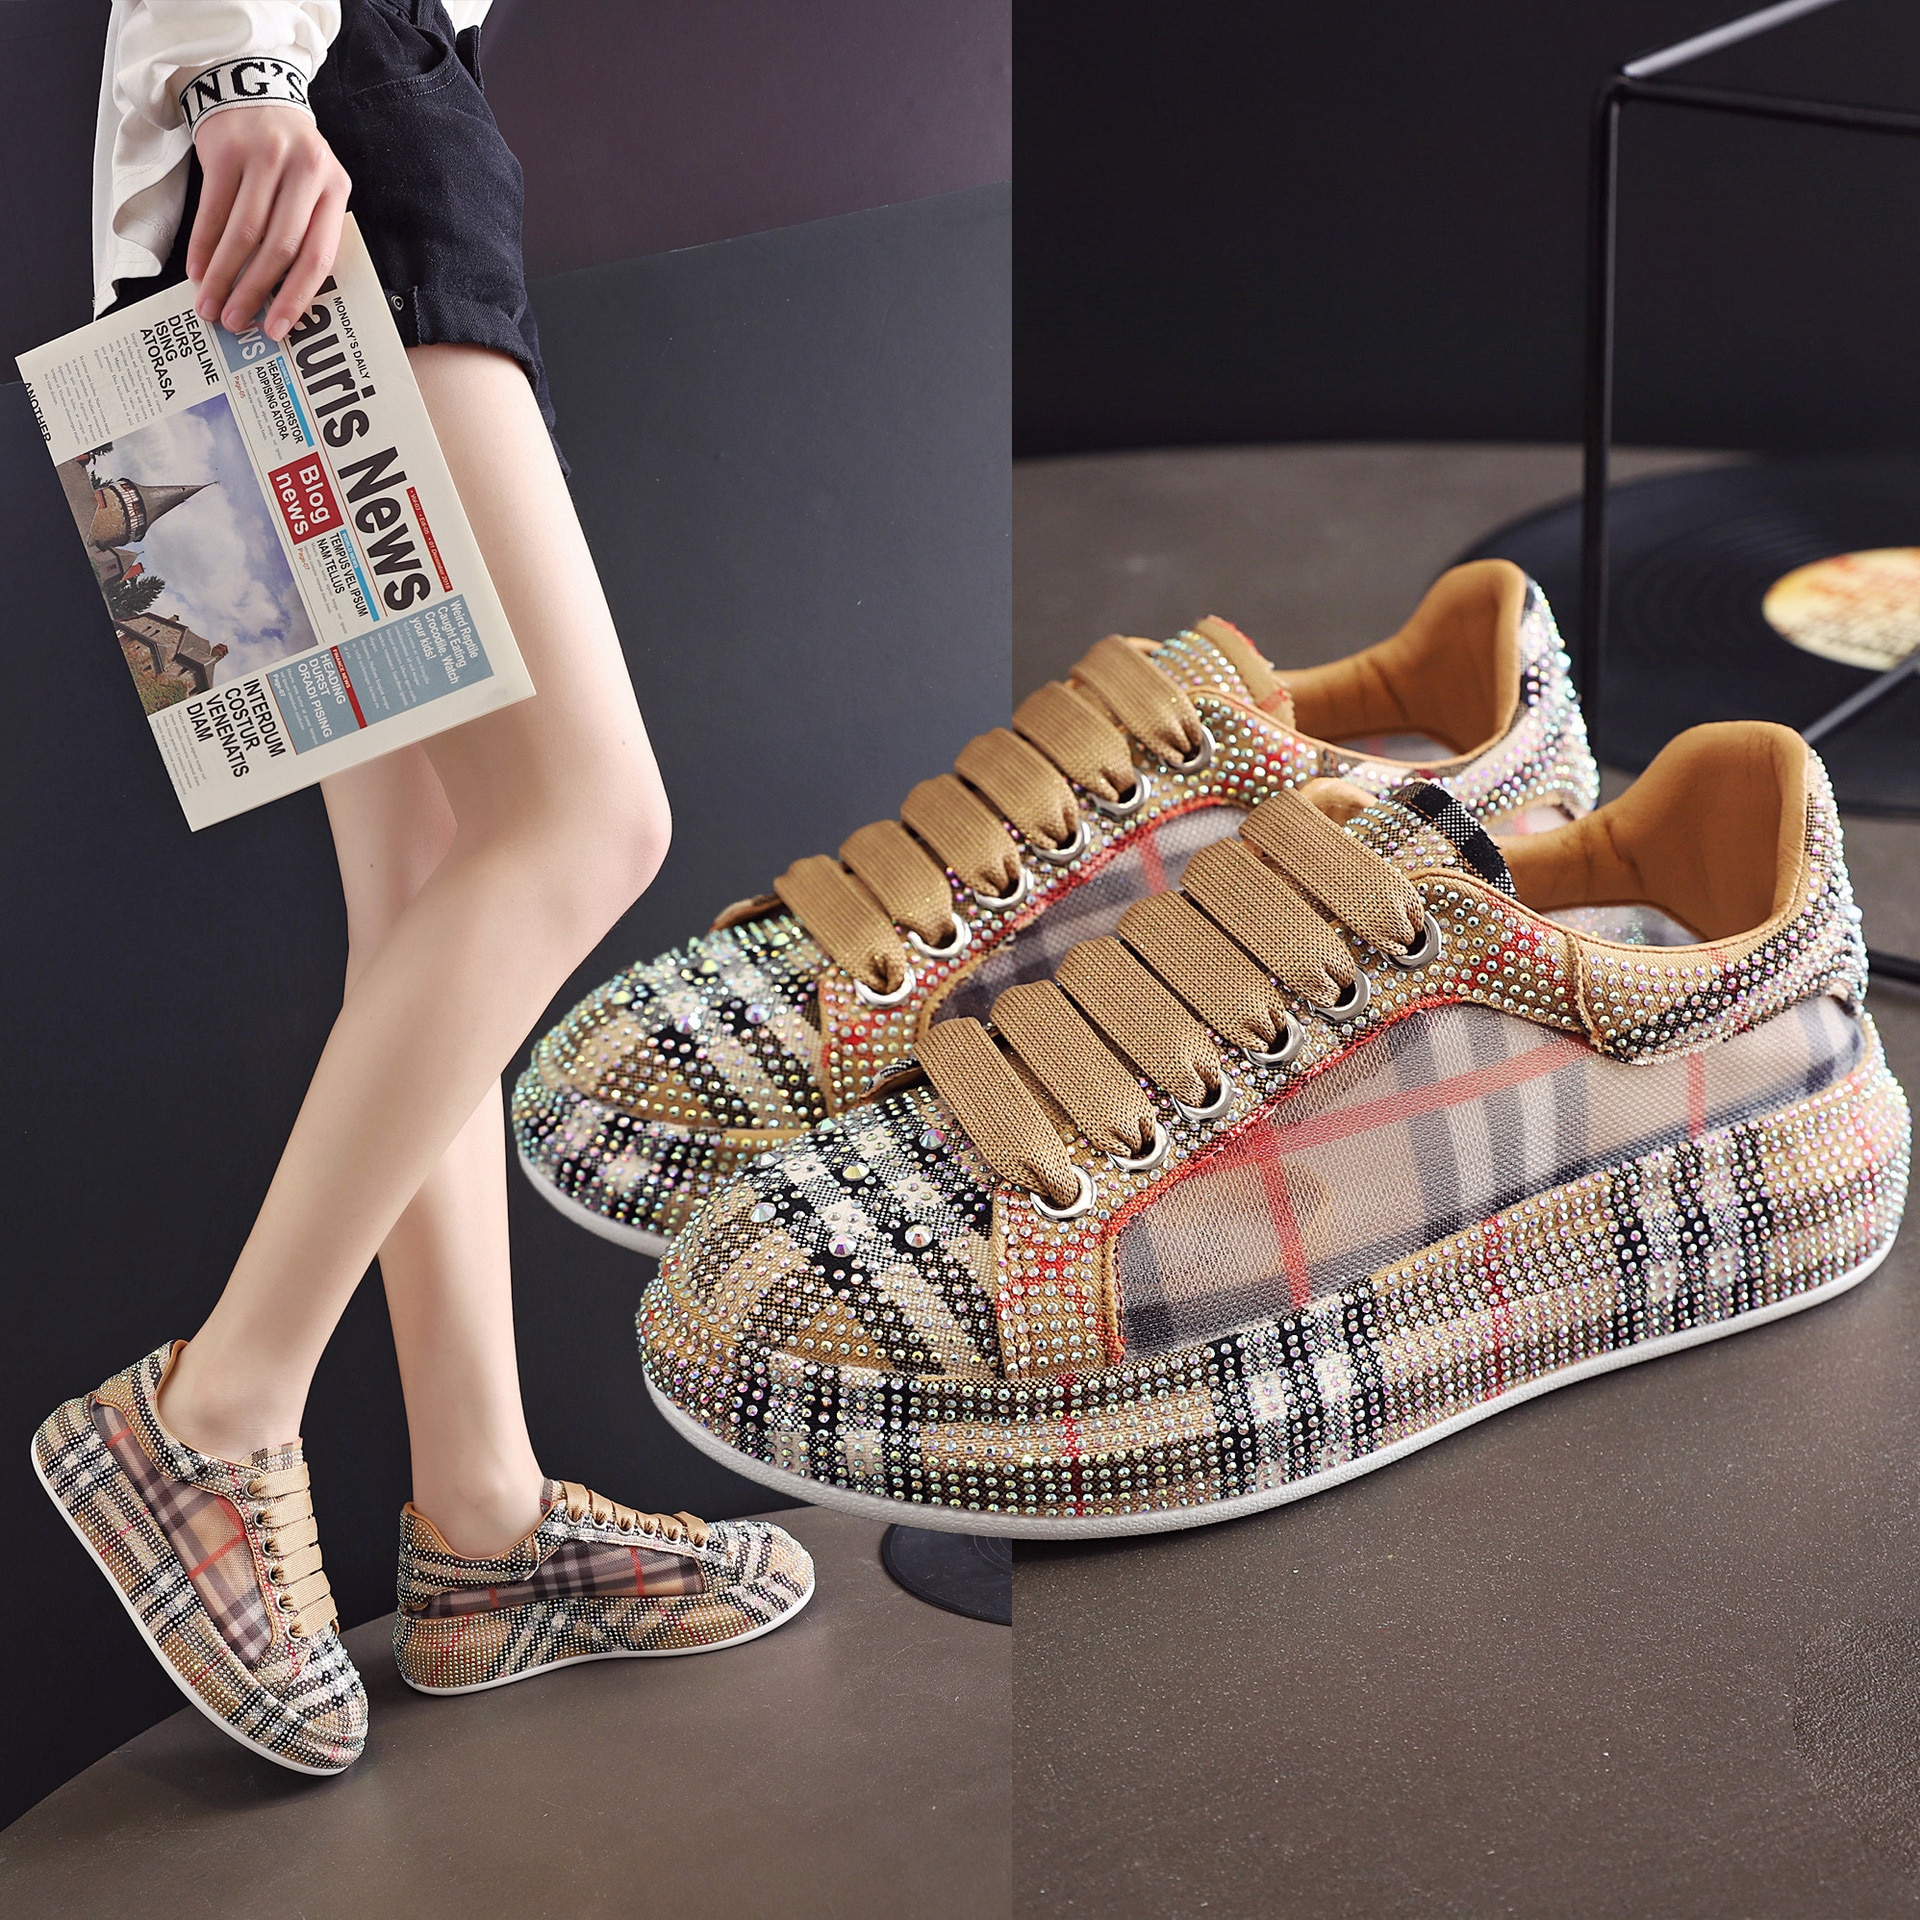 Rhinestone breathable mesh low-cut lace-up casual shoes women 2021 new all-match white shoes sneaker